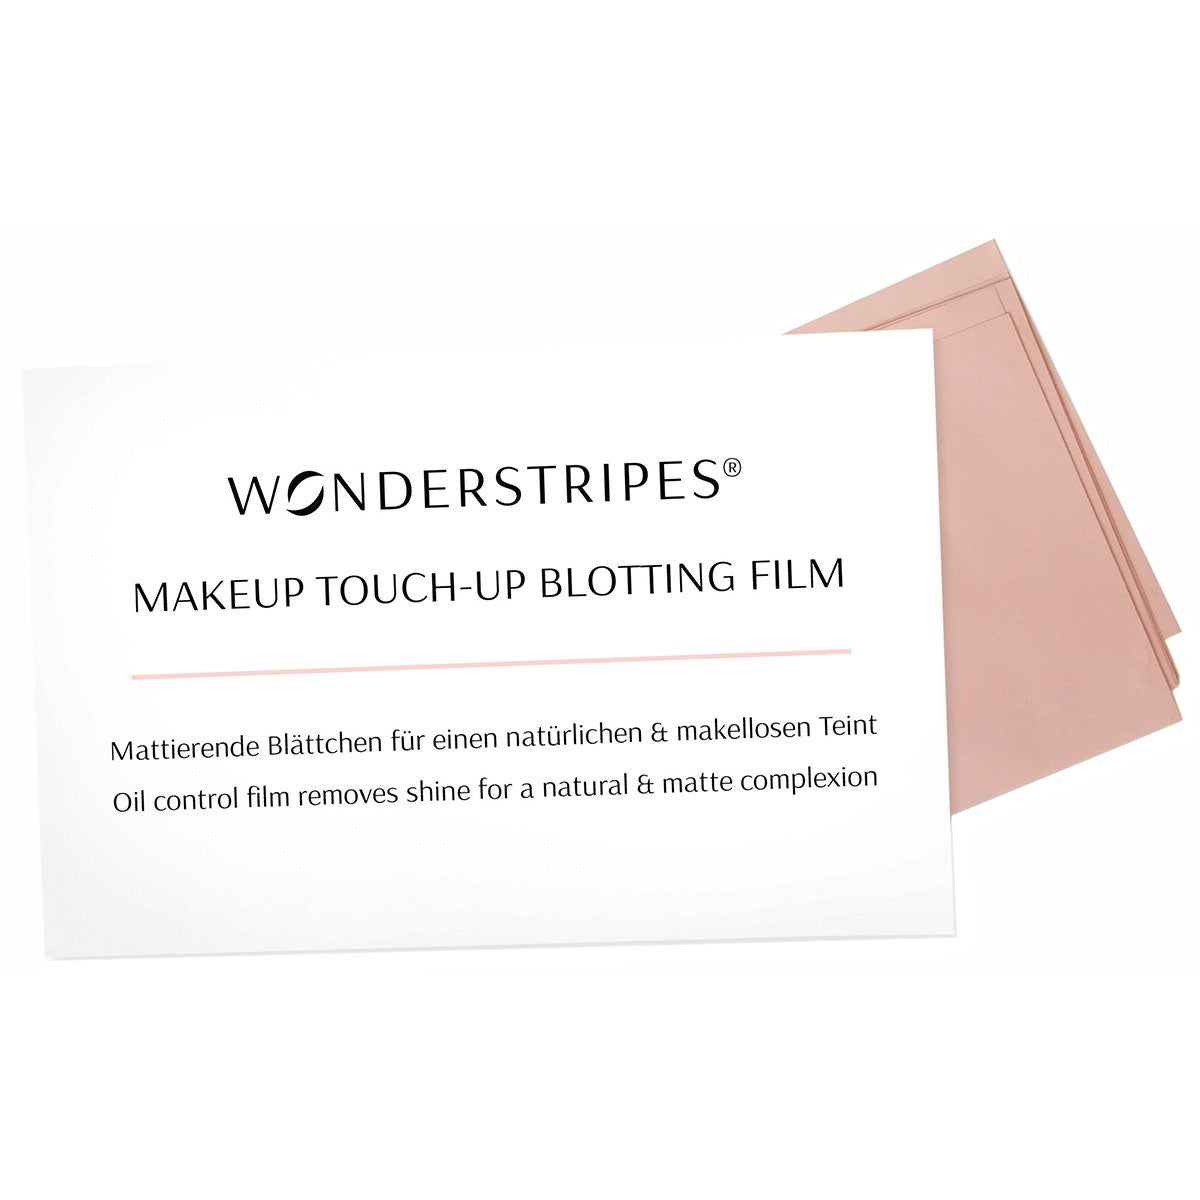 Wonderstripes Makeup Touch-up Blotting Film